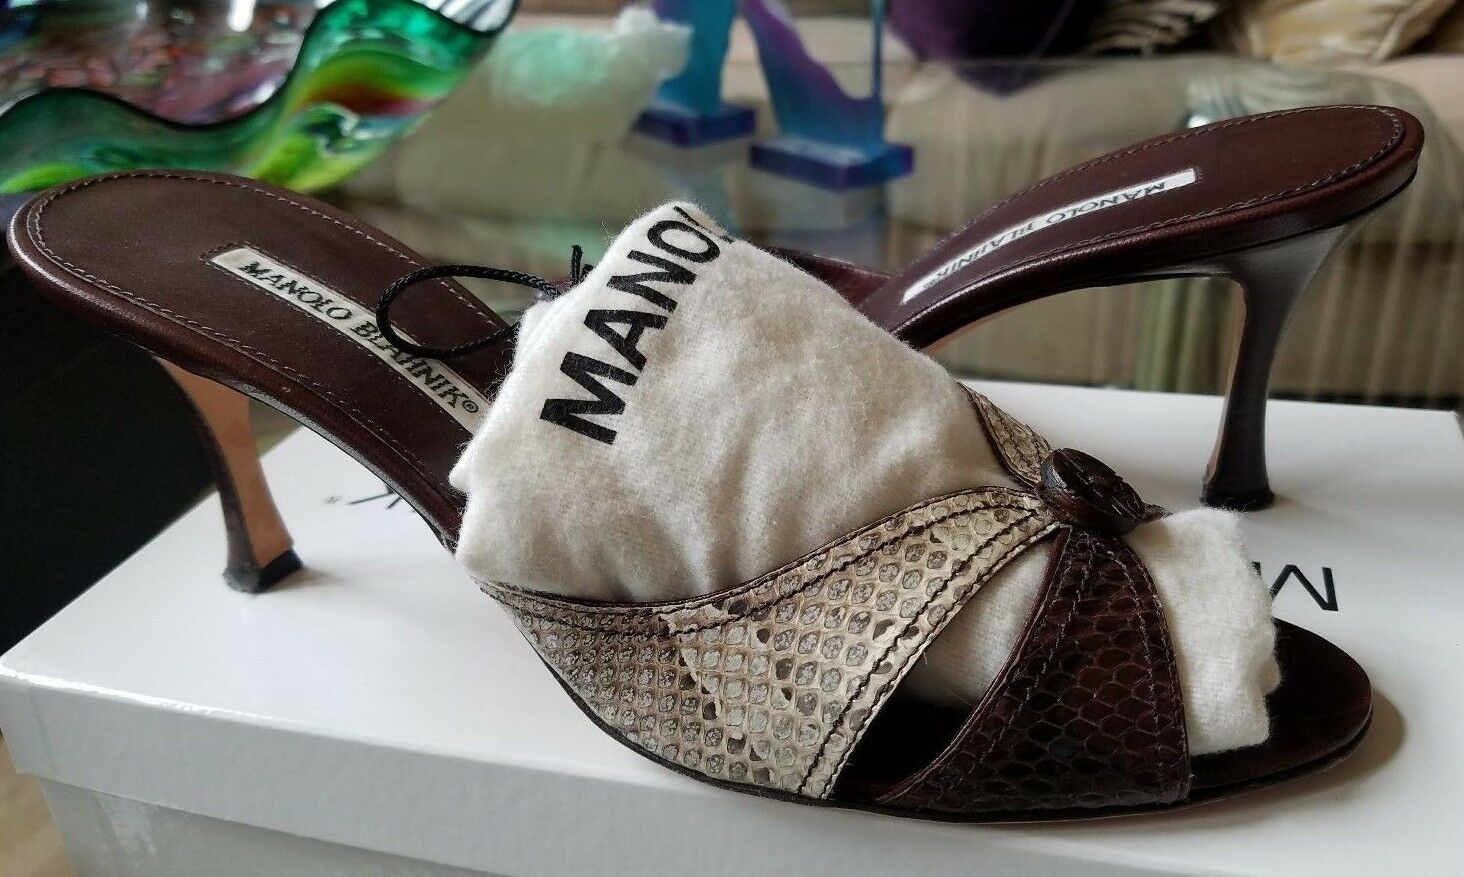 995 MANOLO BLAHNIK SNAKESKIN PYTHON HIGH HEEL SANDALS CREAM & Marronee scarpe 40 90cae9